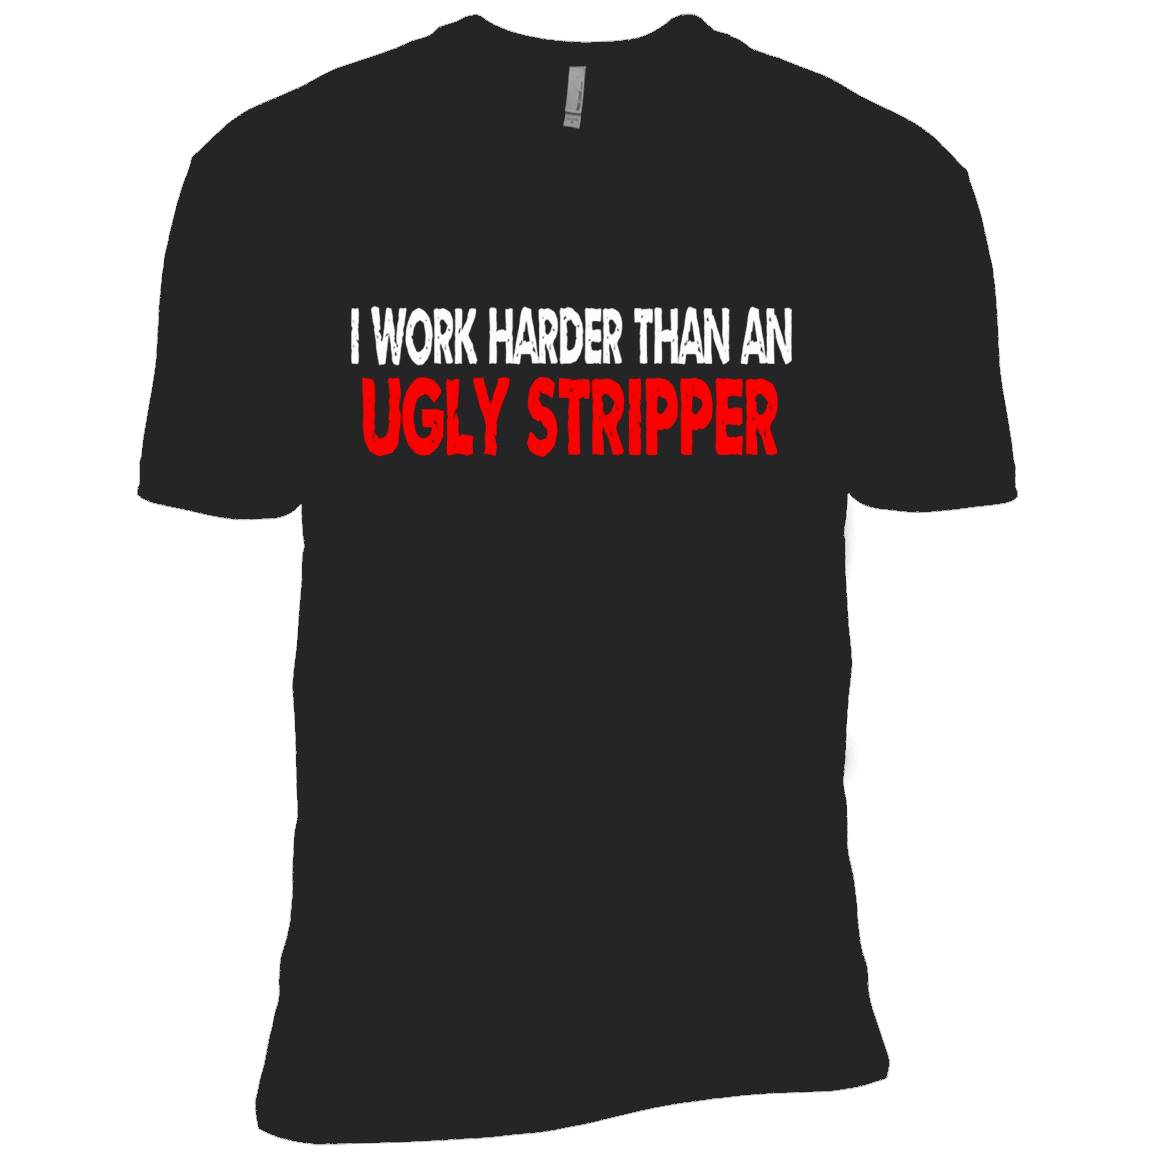 I Work Harder Than An Ugly Stripper T-Shirt, Funny Tee's